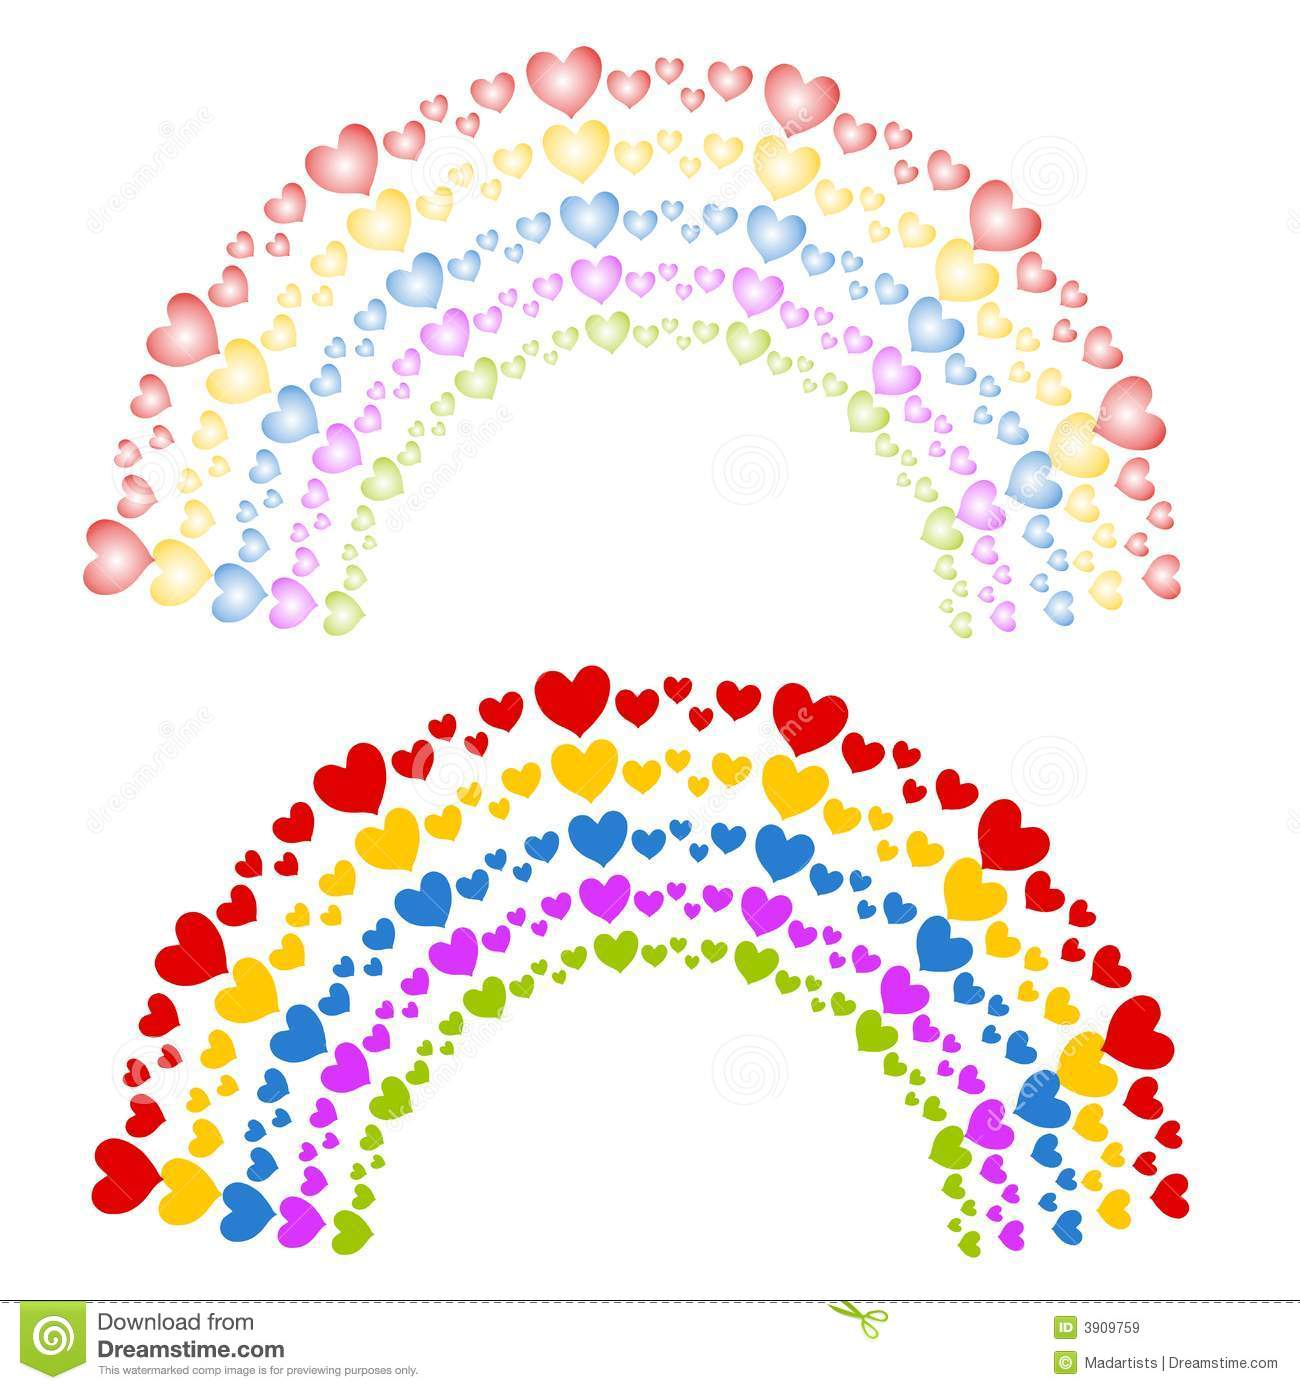 Hearts As Colorful Rainbows Clip Art Royalty Free Stock Images.